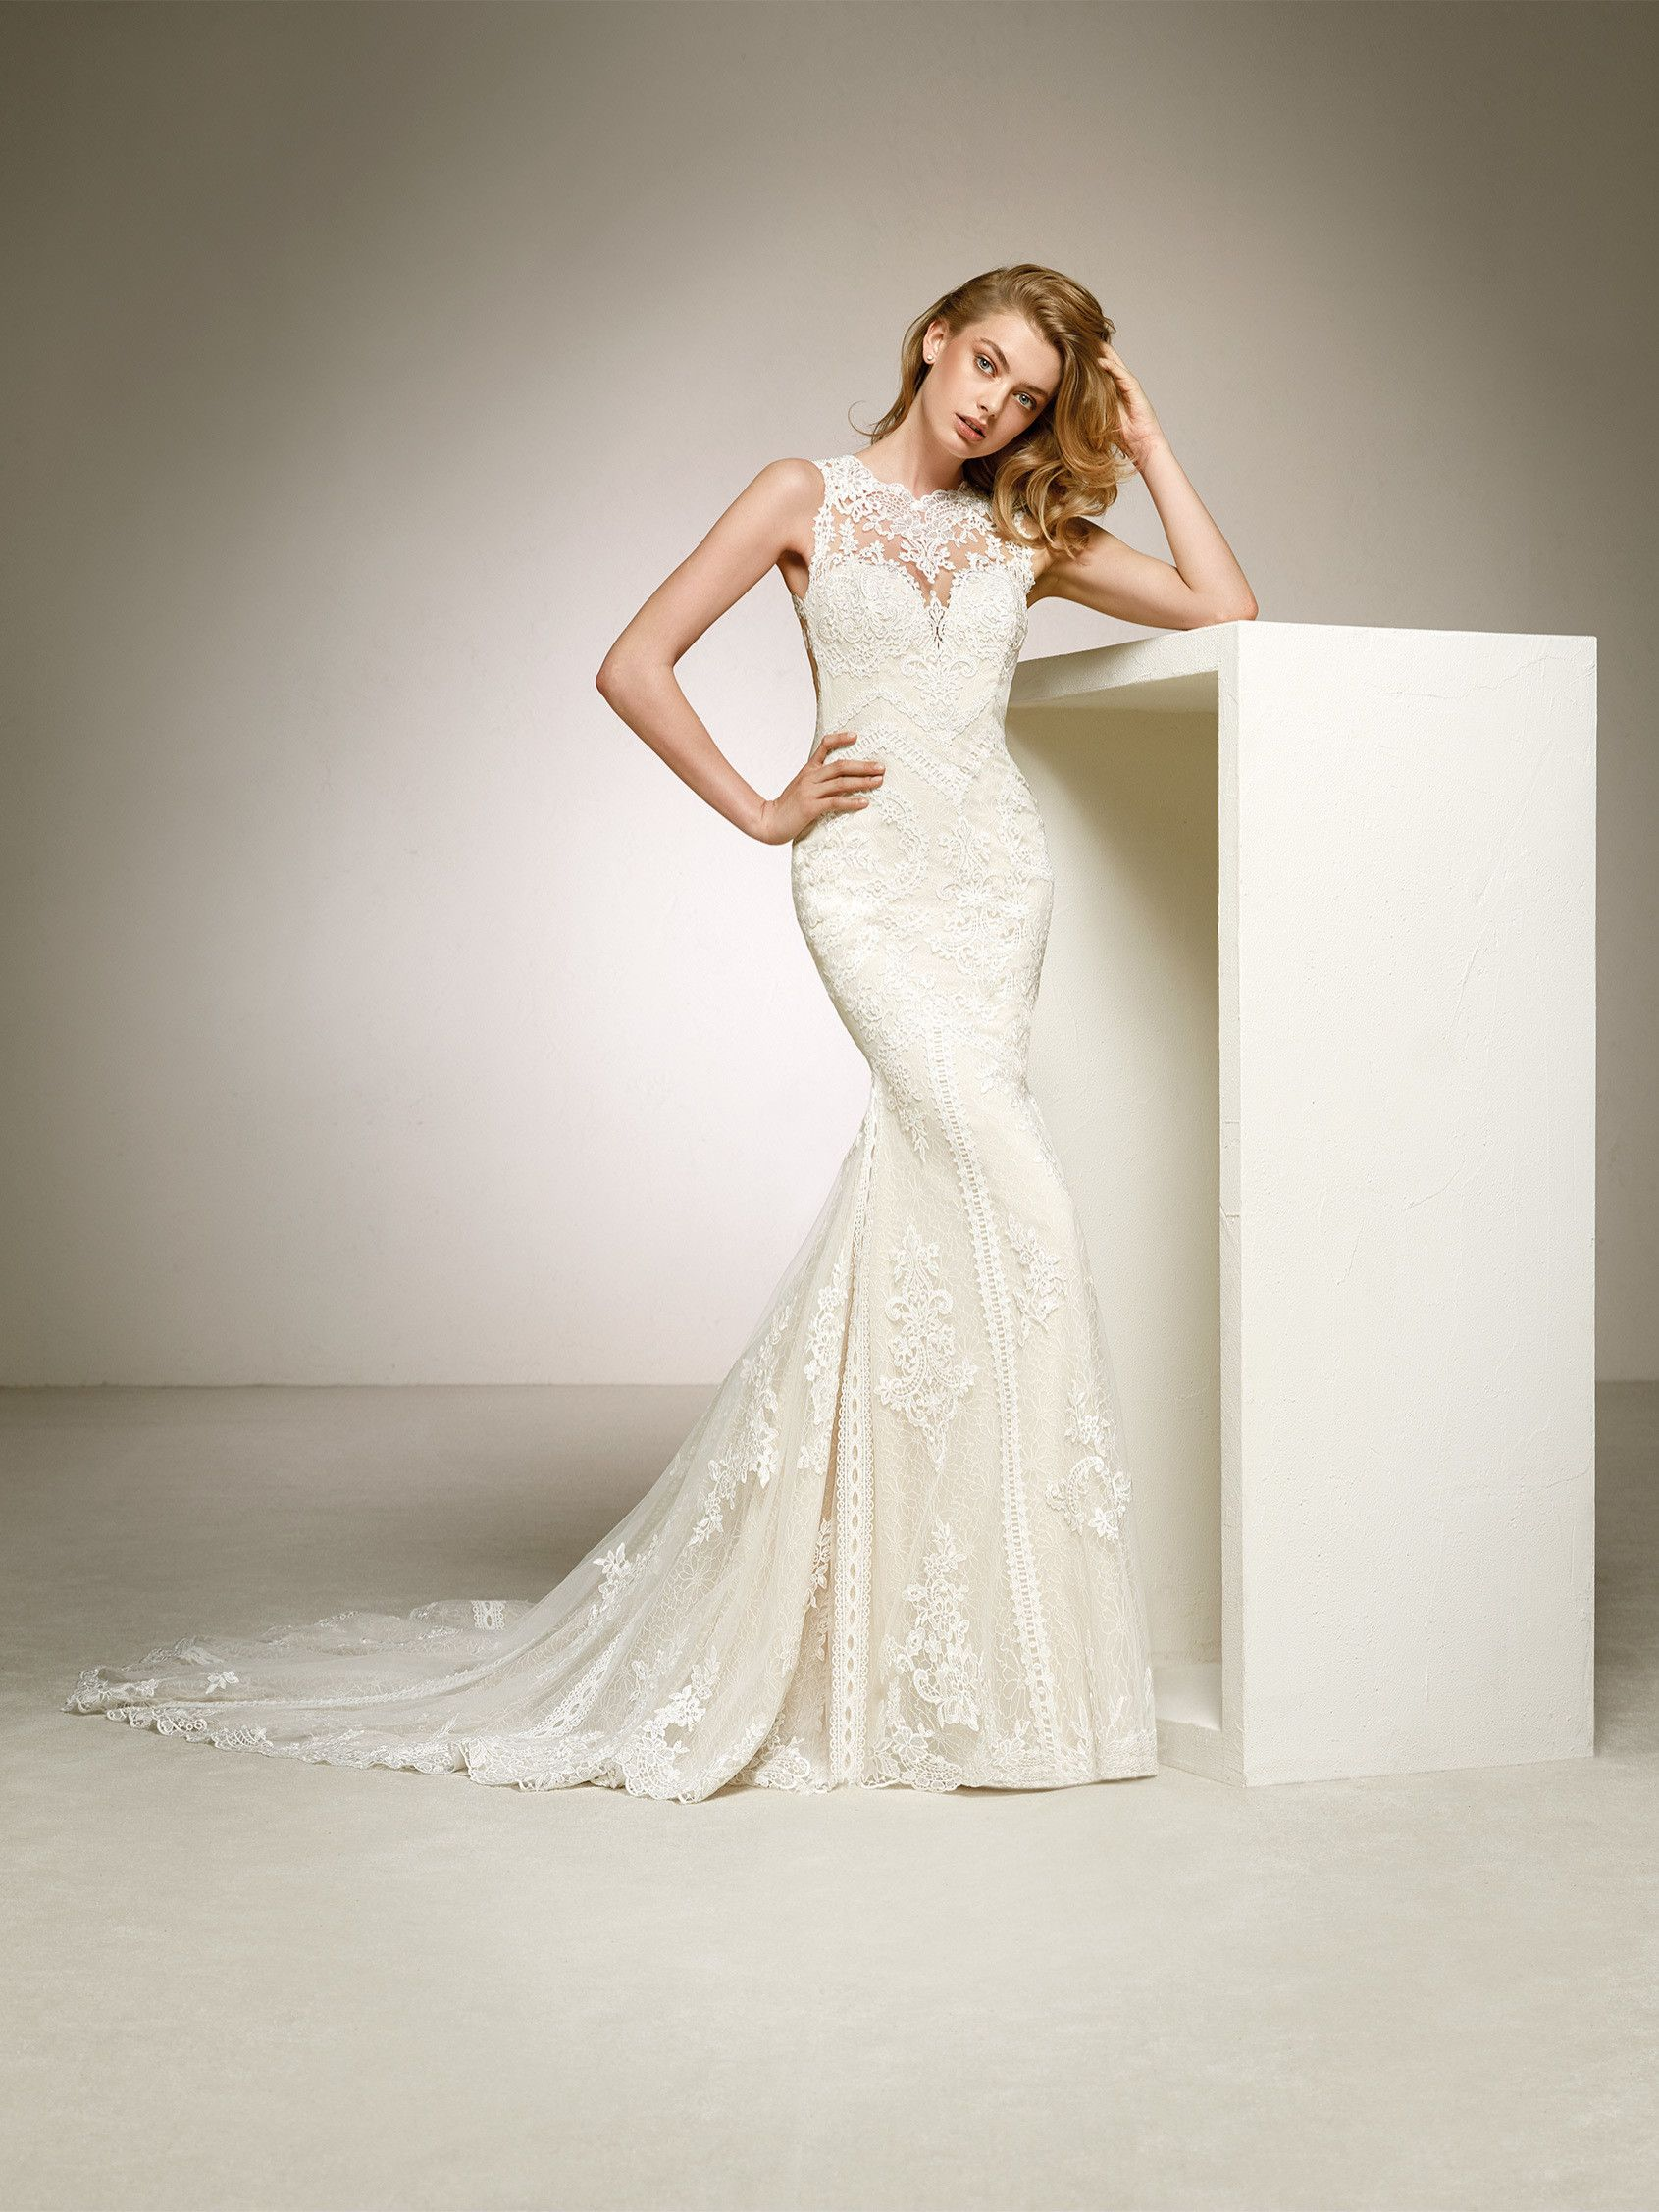 Fabulous mermaid wedding dress with a long train in embroidered ...